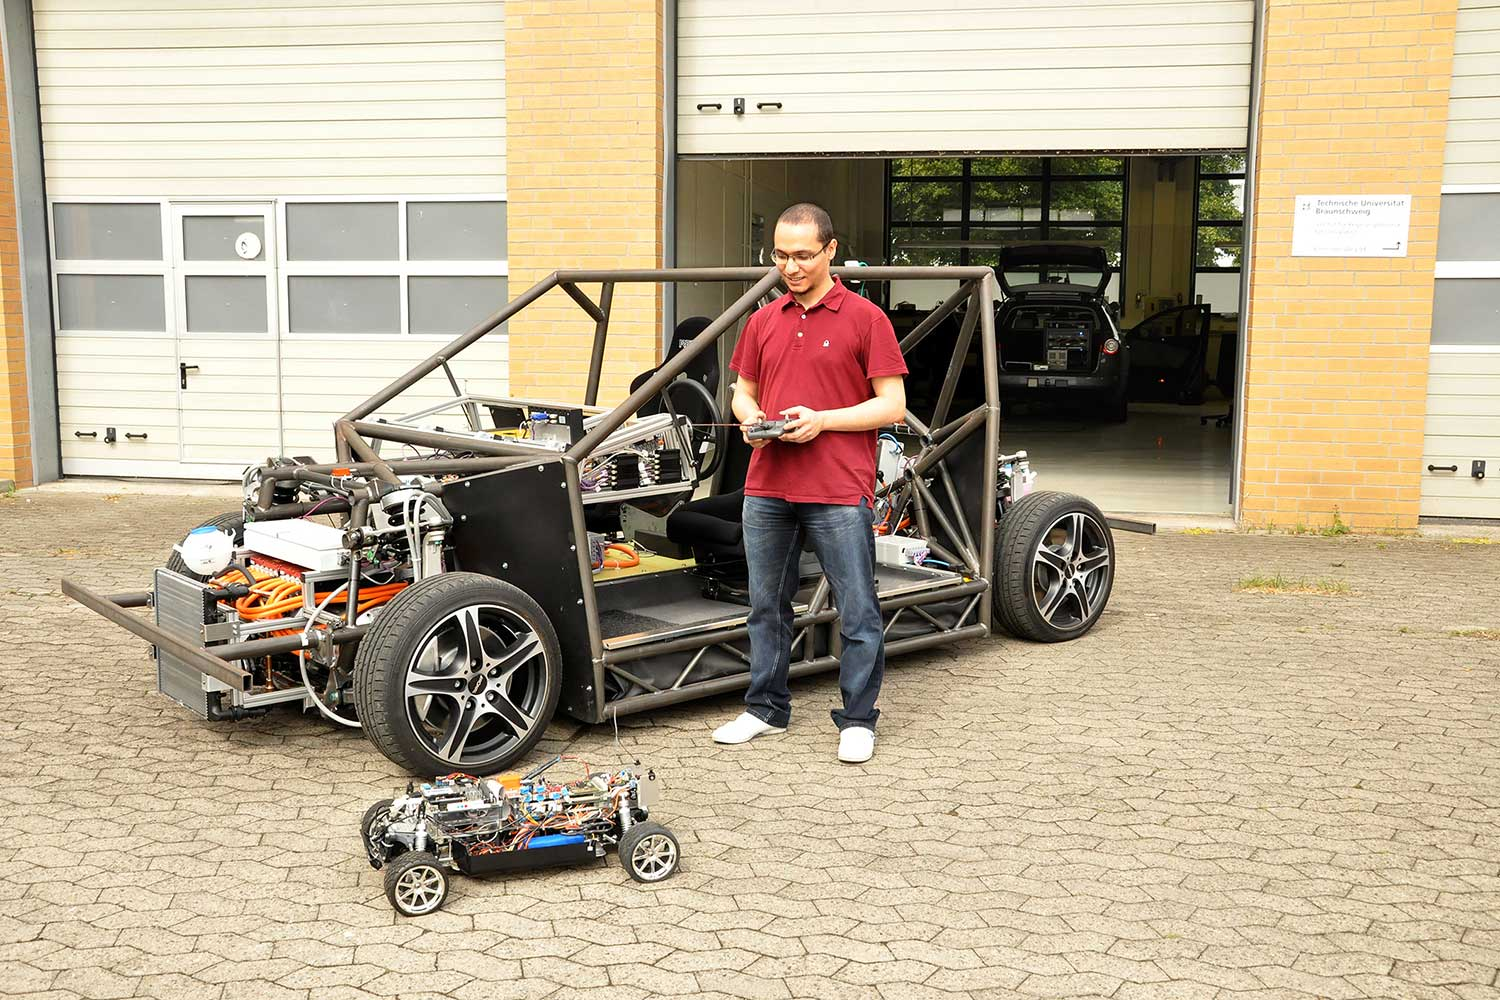 Bashar Ibrahim, student and scholarship holder at the Institute of Control Engineering, compares the size of the MOBILE car to MAX, the practice model at a scale of 1:5. Credit: Kristina Rottig/TU Braunschweig